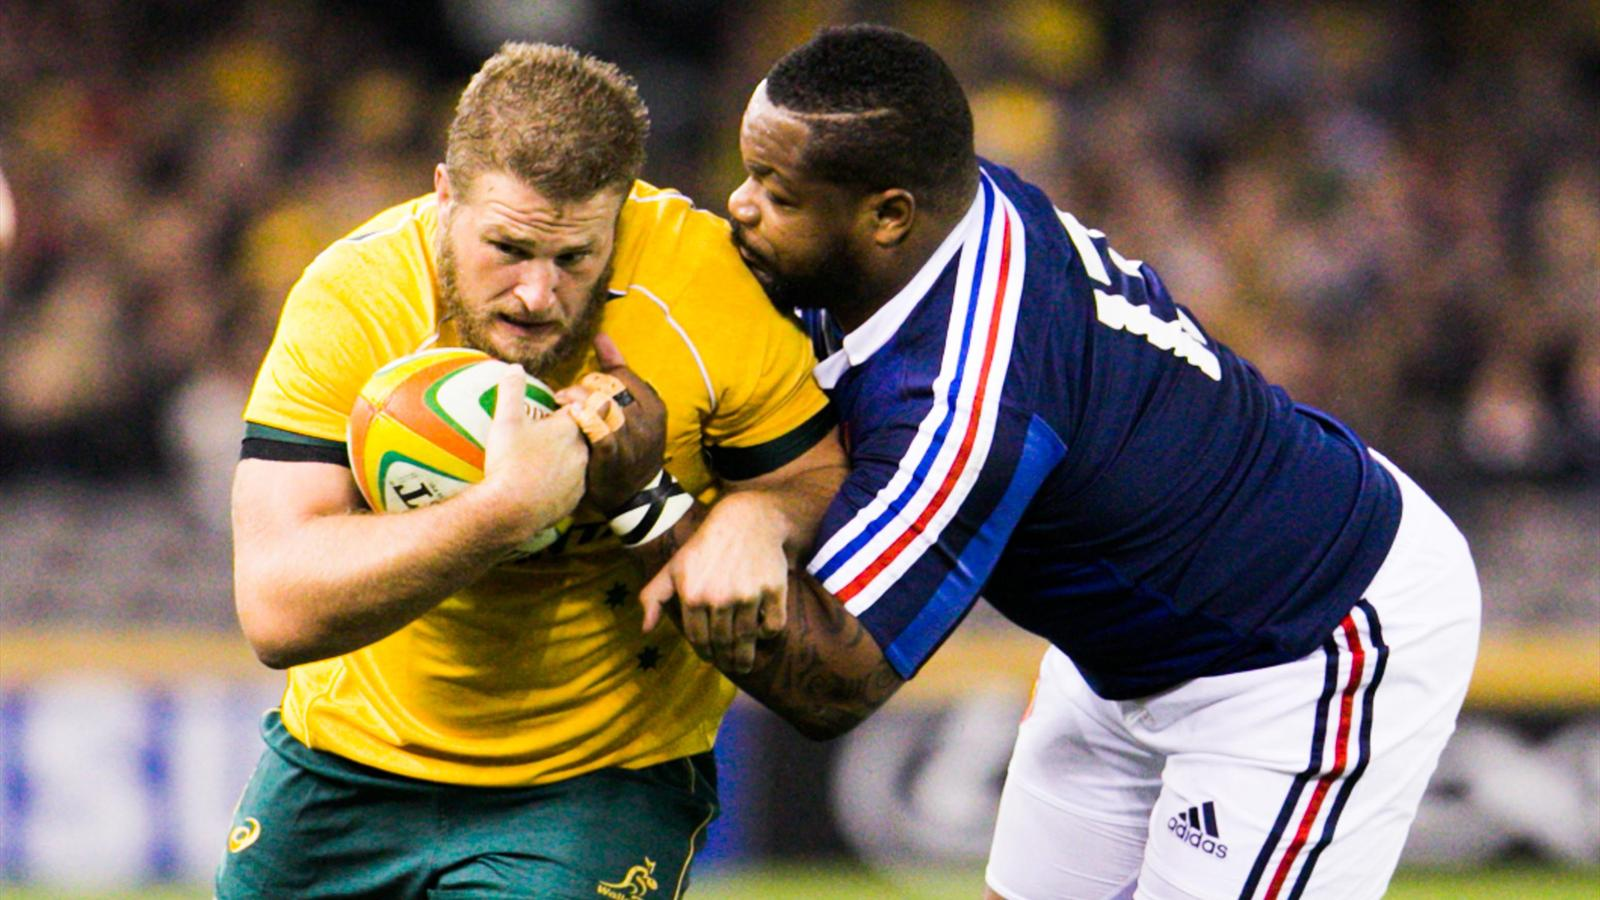 Mathieu Bastareaud plaque Paddy Ryan lors d'Australie-France - 14 juin 2014